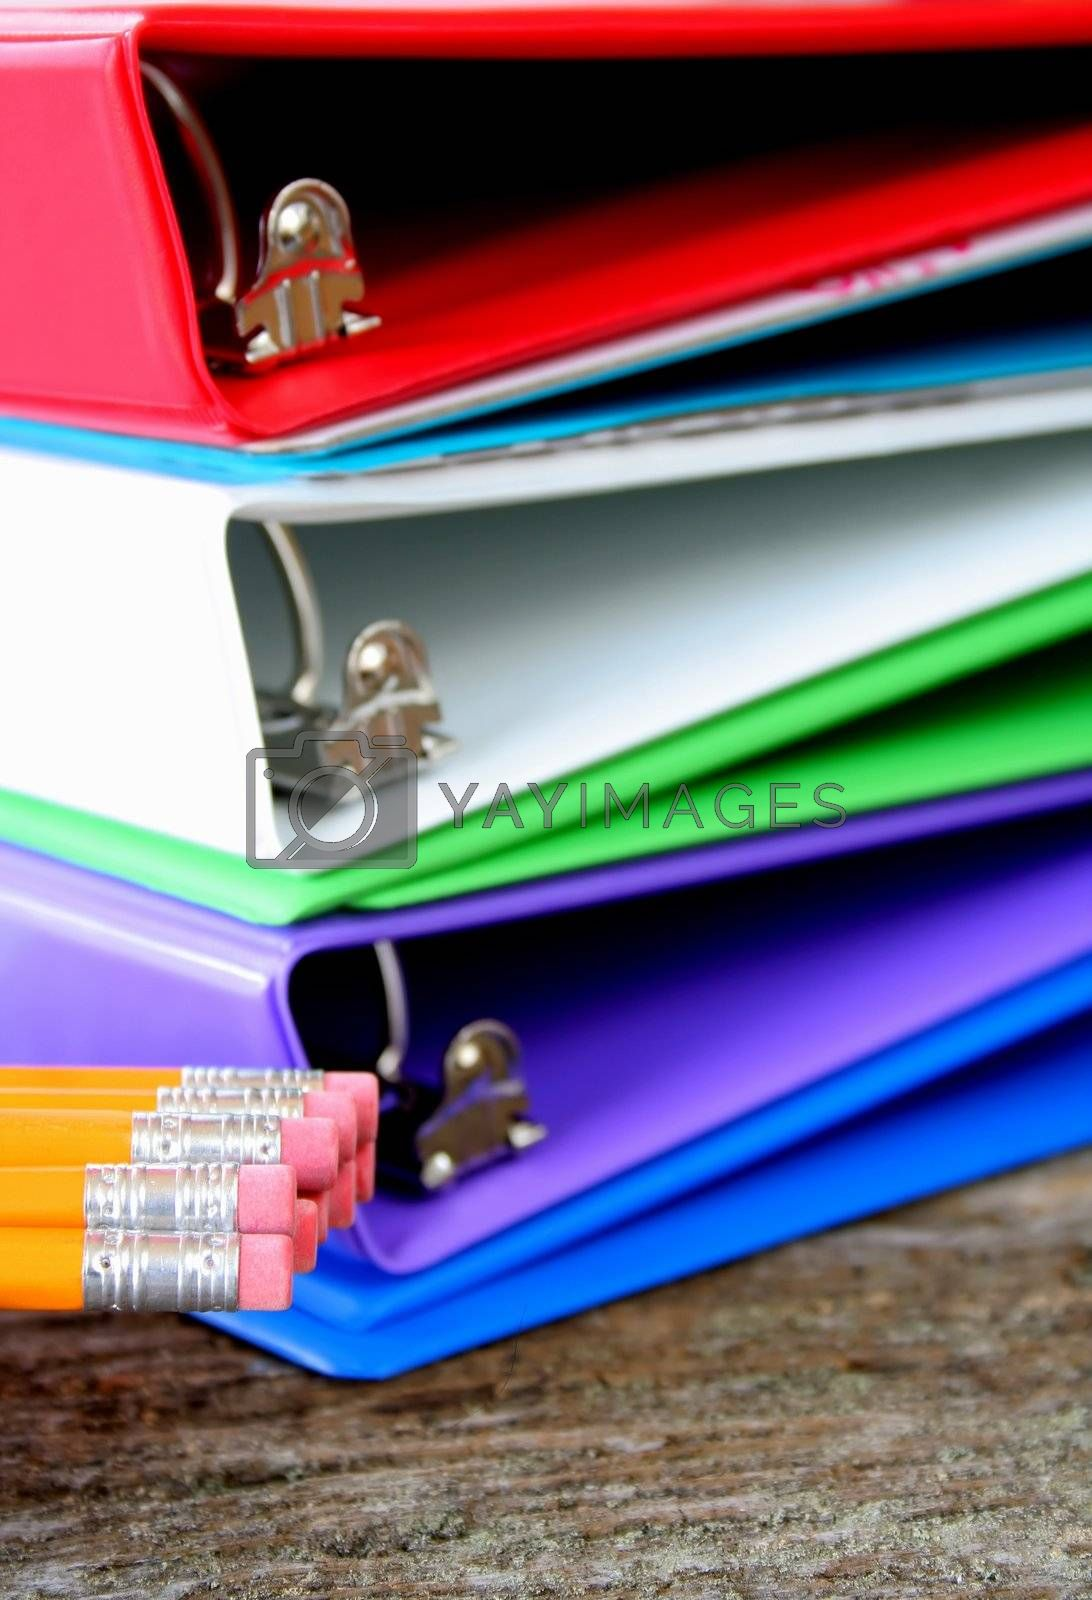 School or business supplies.  4 binders and pencils, used a shallow DOF with focus on the erasers.